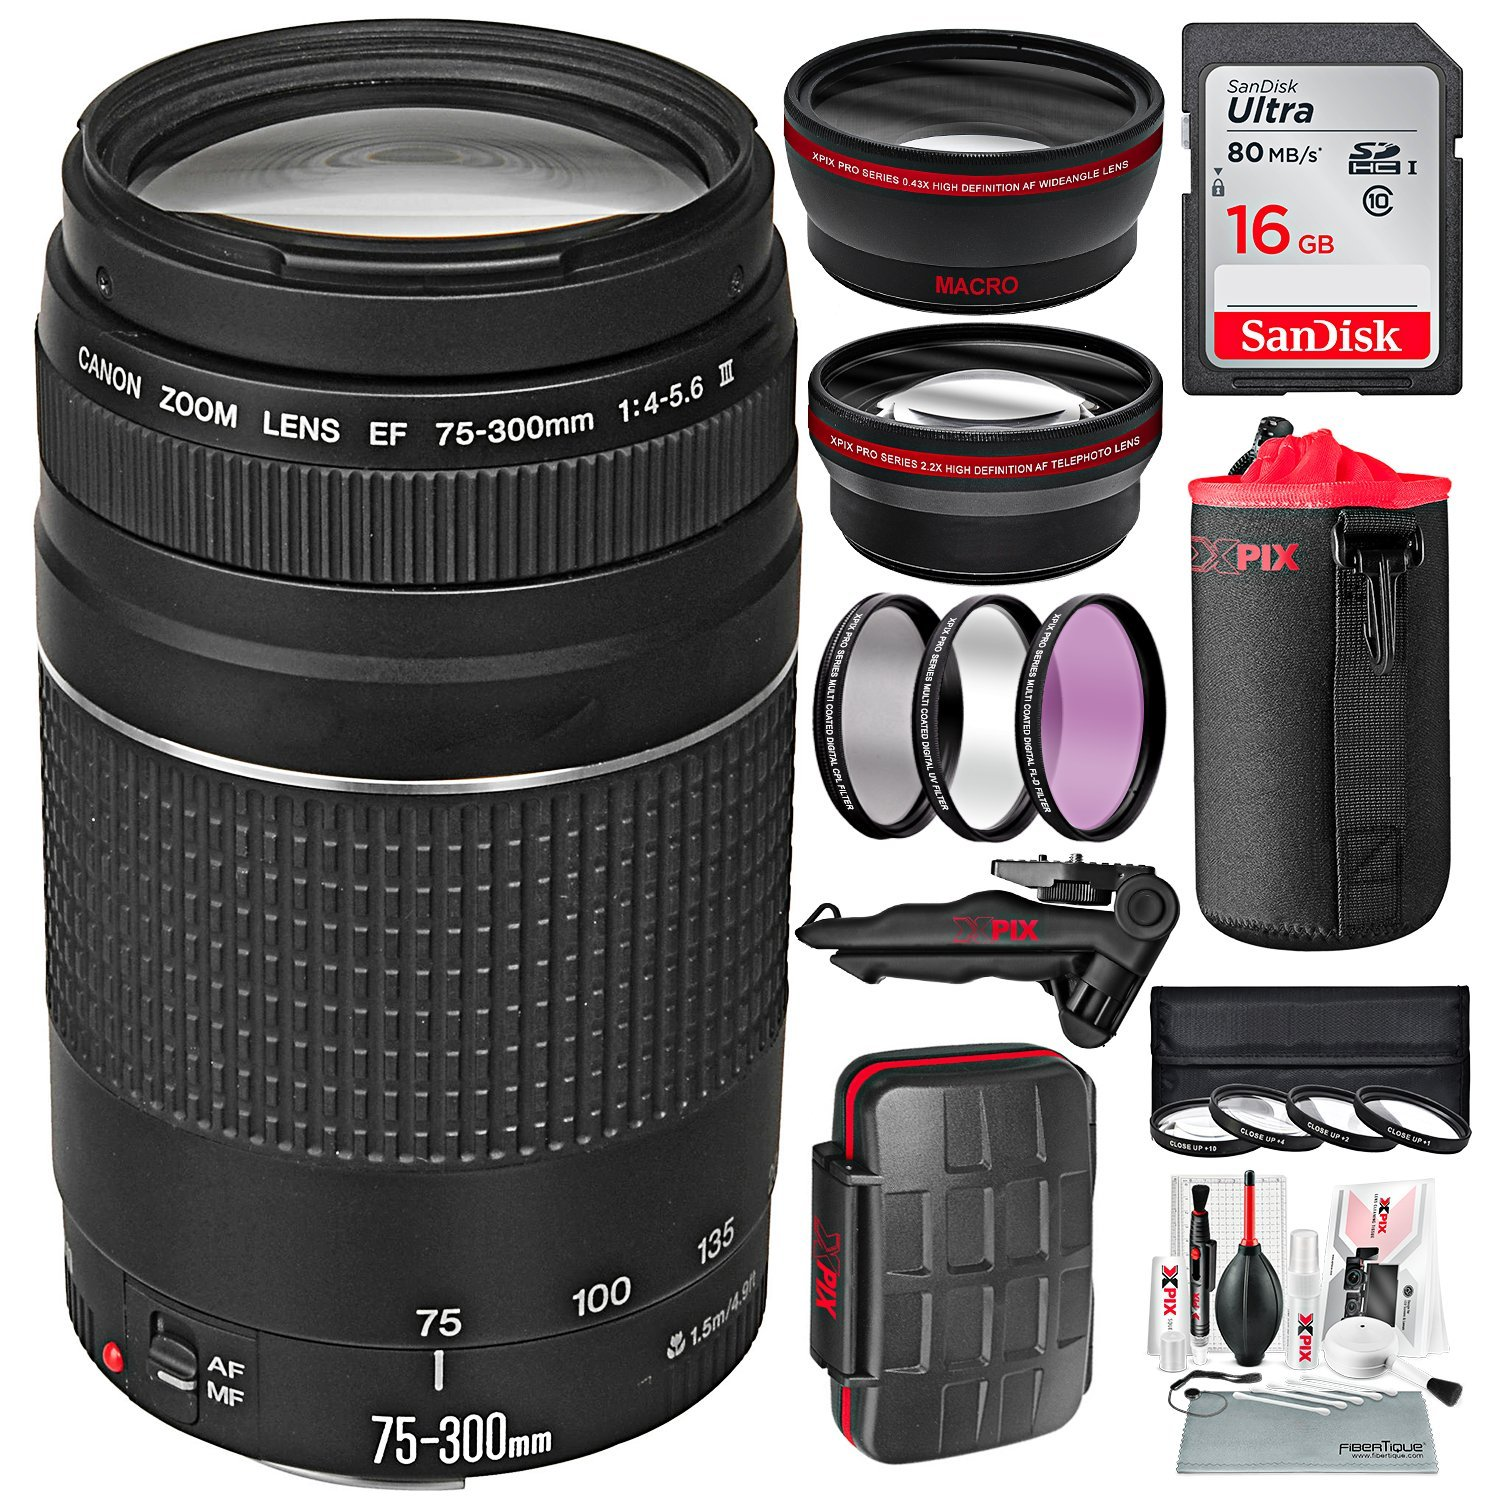 Canon EF 75-300mm f/4-5.6 III Telephoto Zoom Lens for Canon DSLR and 16GB + Professional Tripod + Wide-Angle Lens + Deluxe Accessory Bundle by Canon